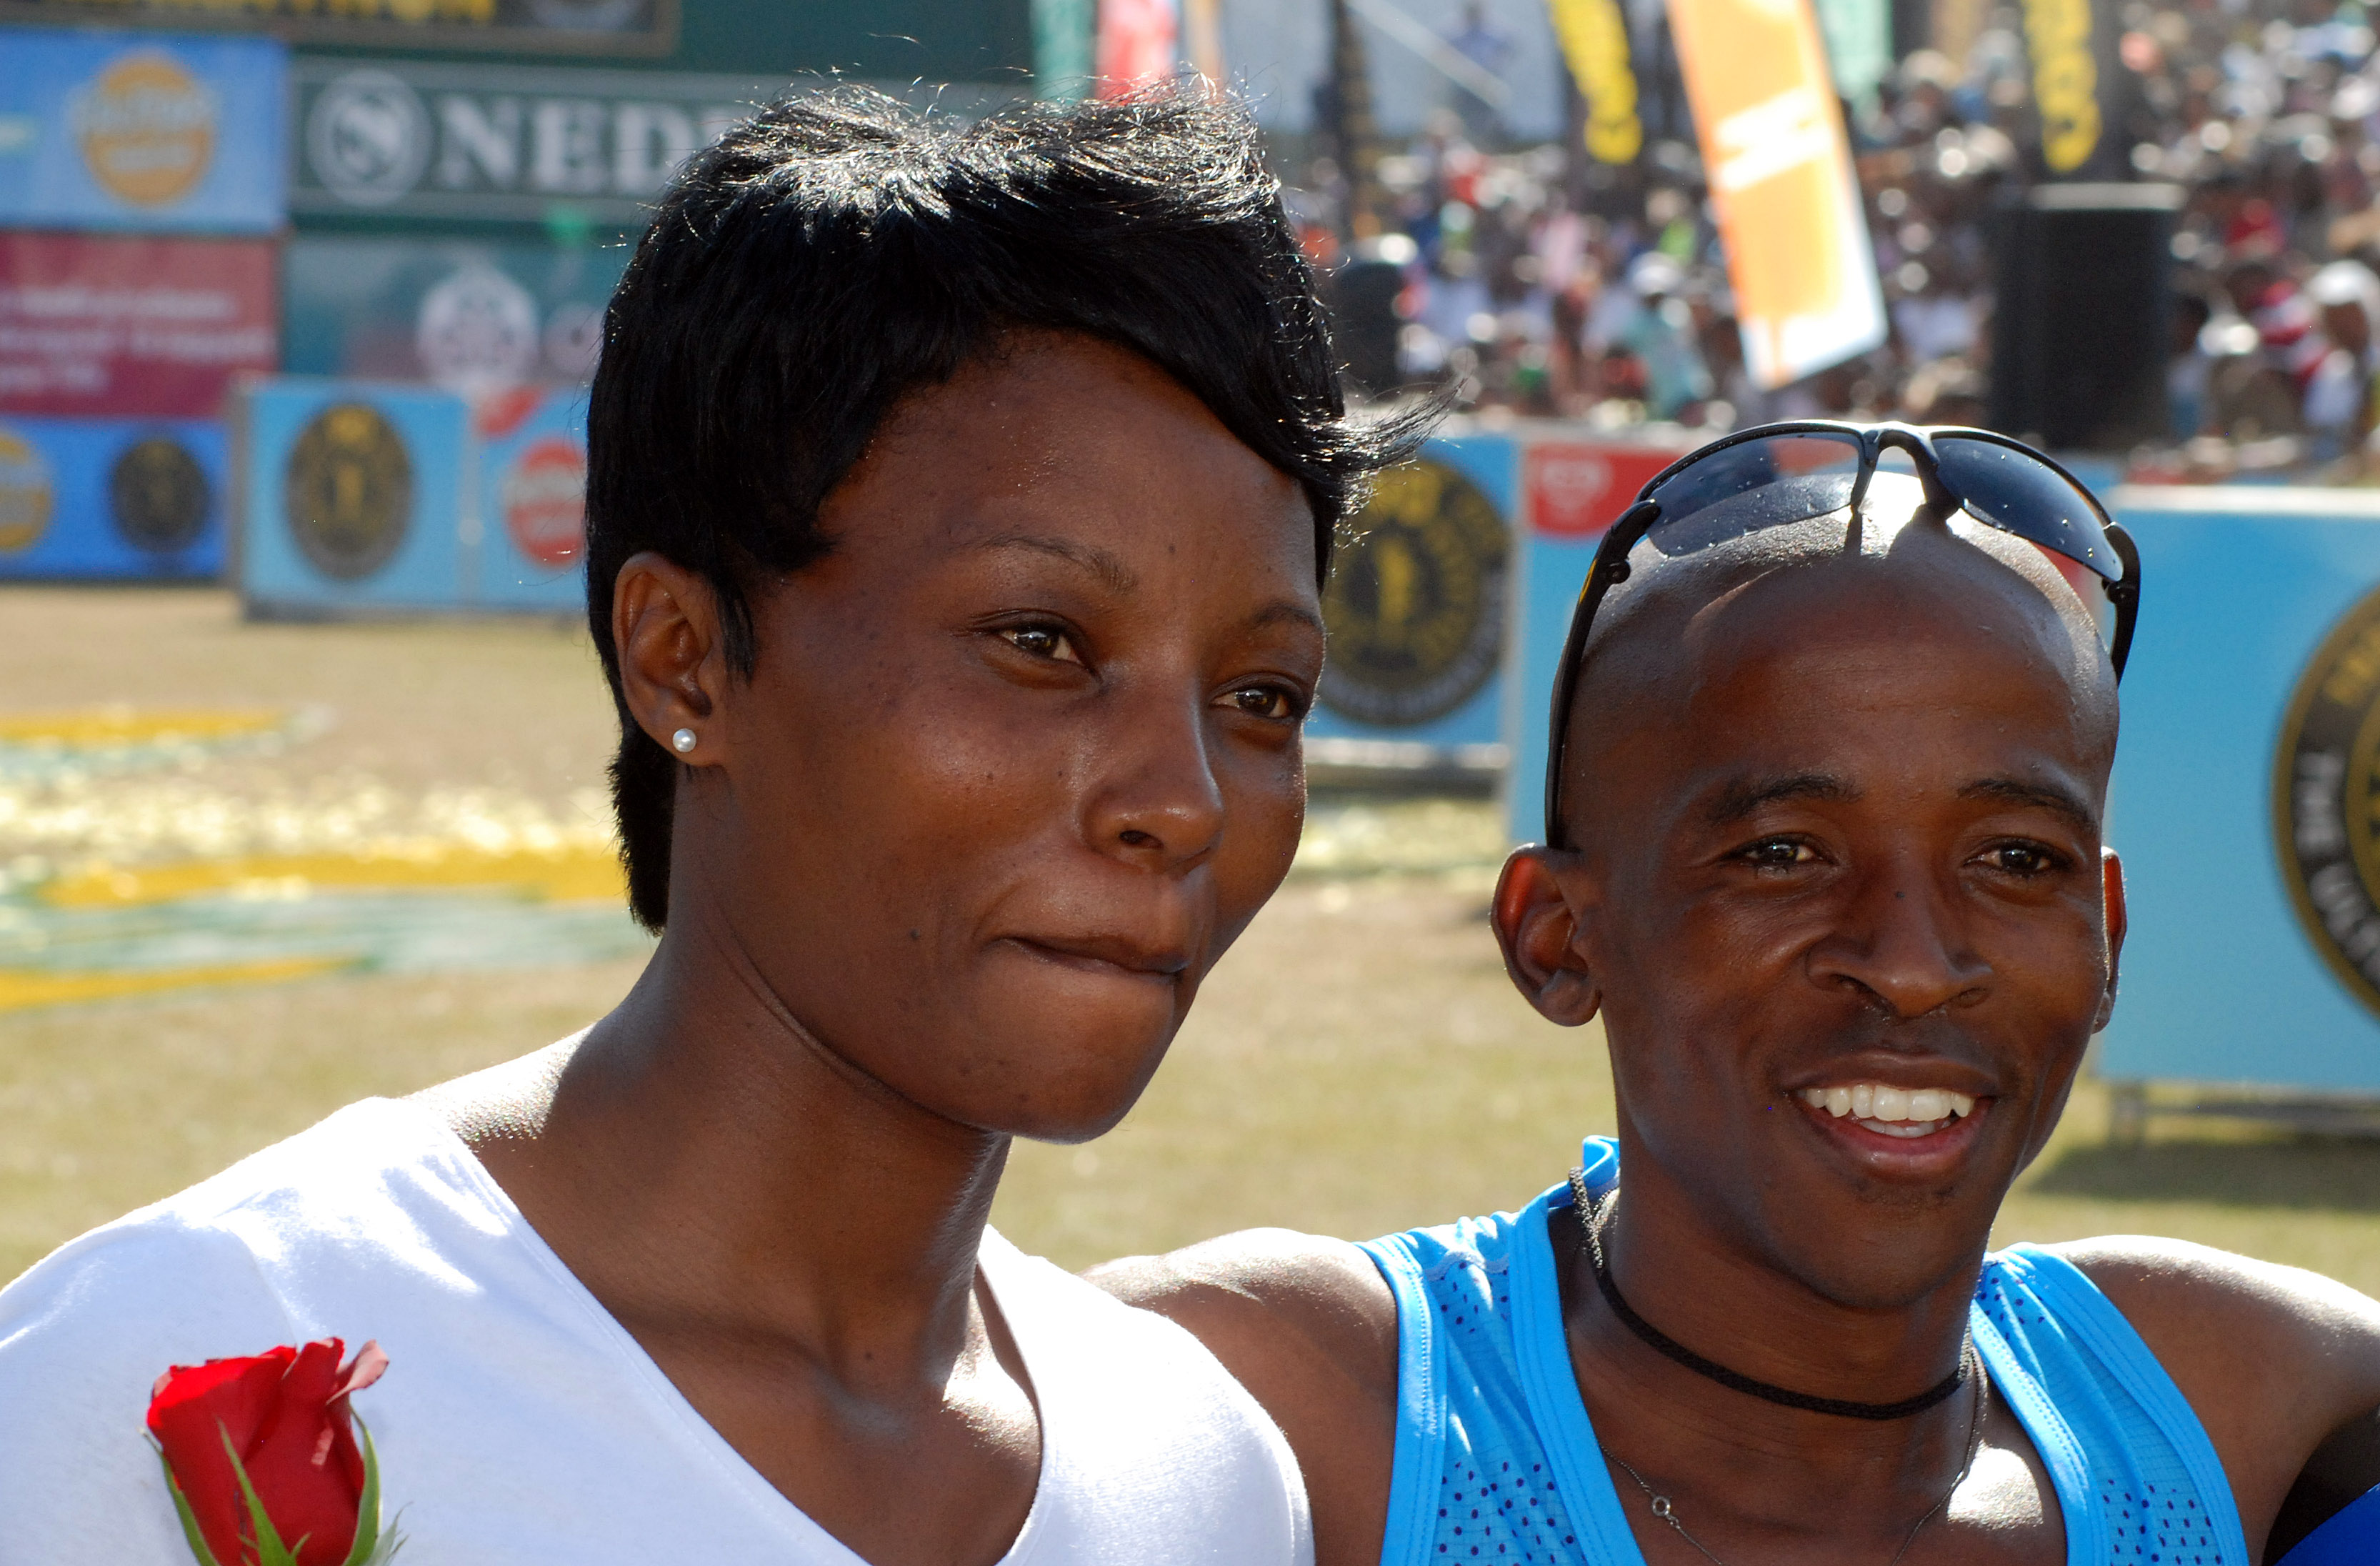 Comrades gift to tie the knot with pietermaritzburg police woman comrades 2015 winner gift kelehe and his fiancee nombuso maphanga at the finish line on comrades day on saturday they will celebrate their pre wedding negle Images